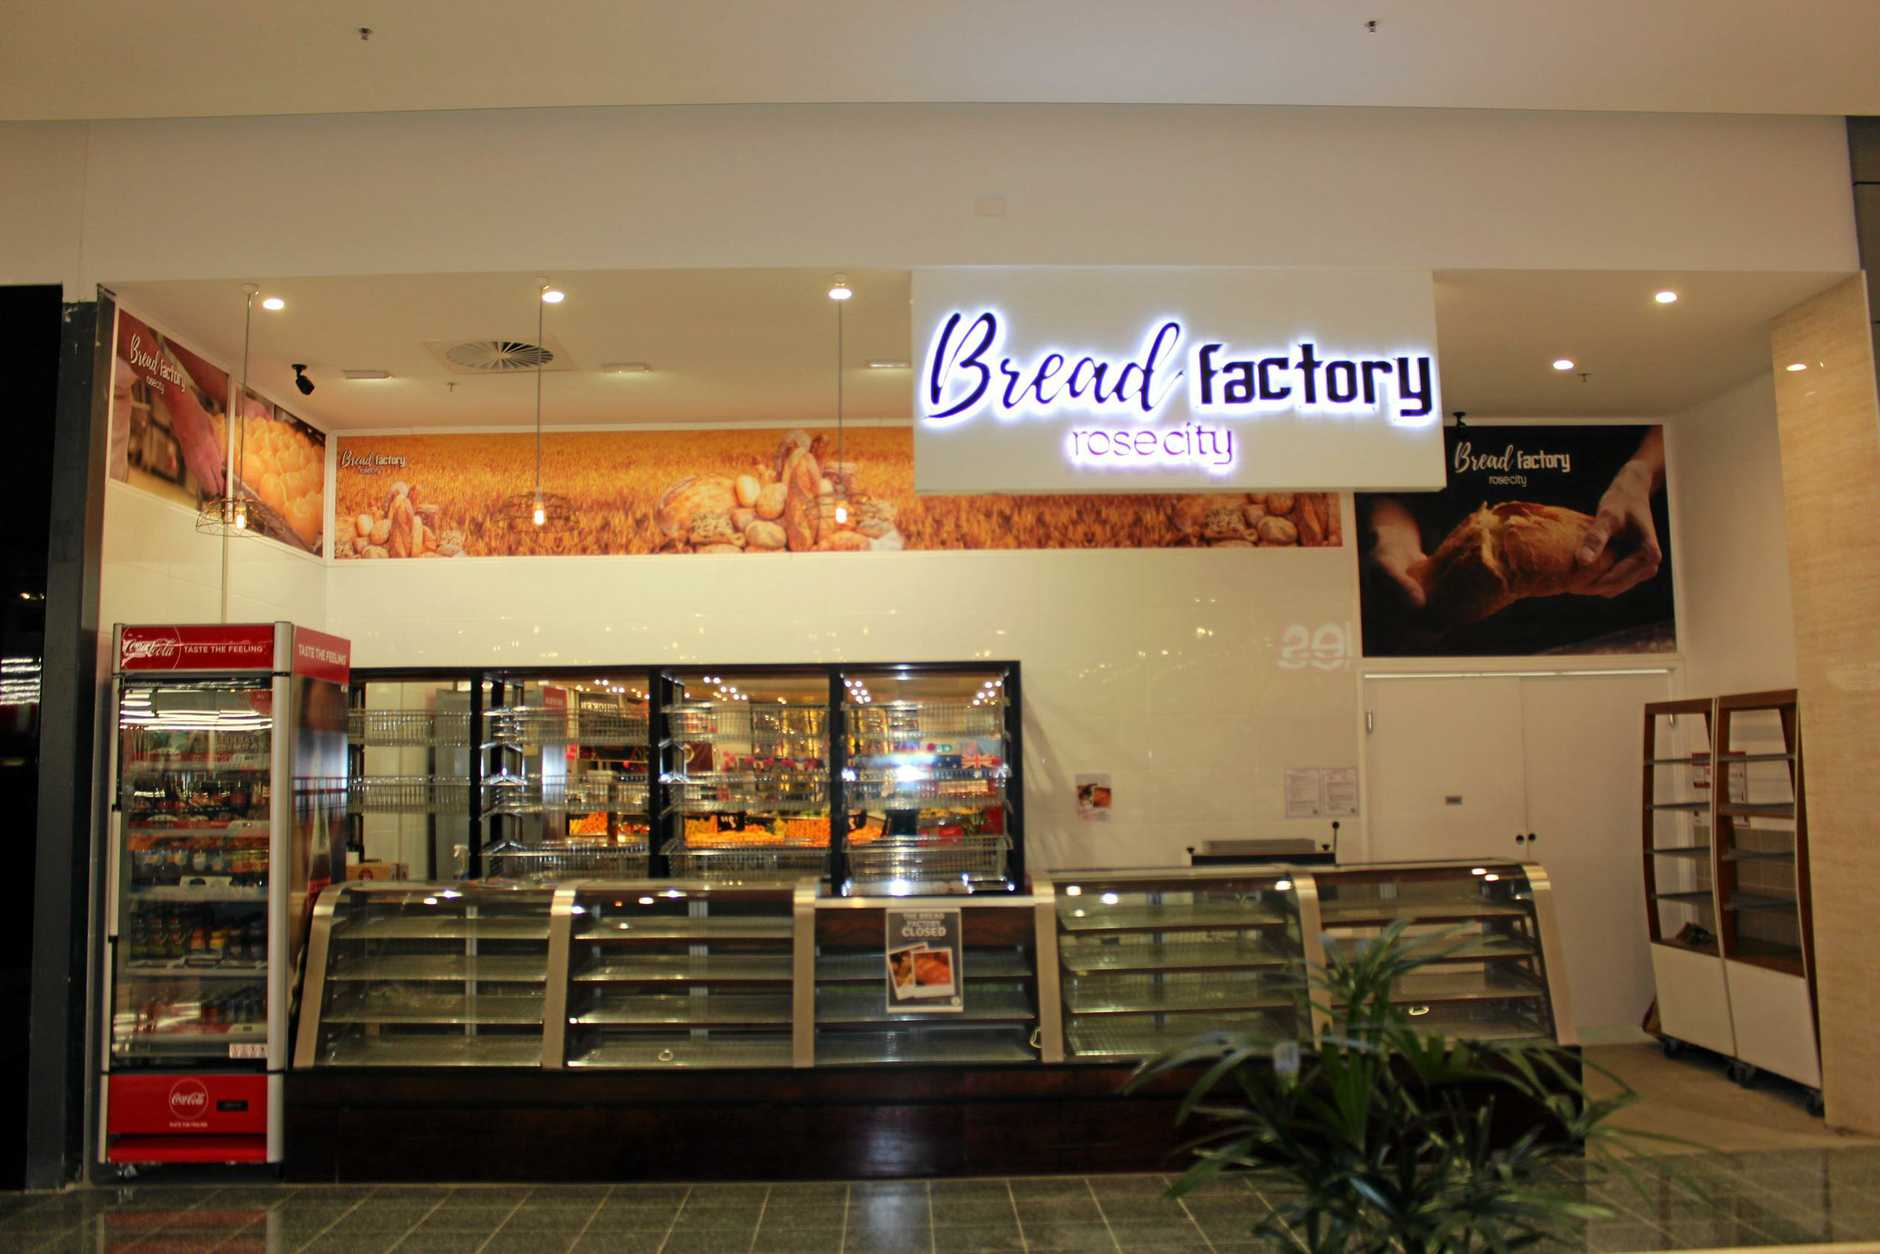 The future is uncertain for the Bread Factory bakery in Rose City Shoppingworld, which opened three months ago.